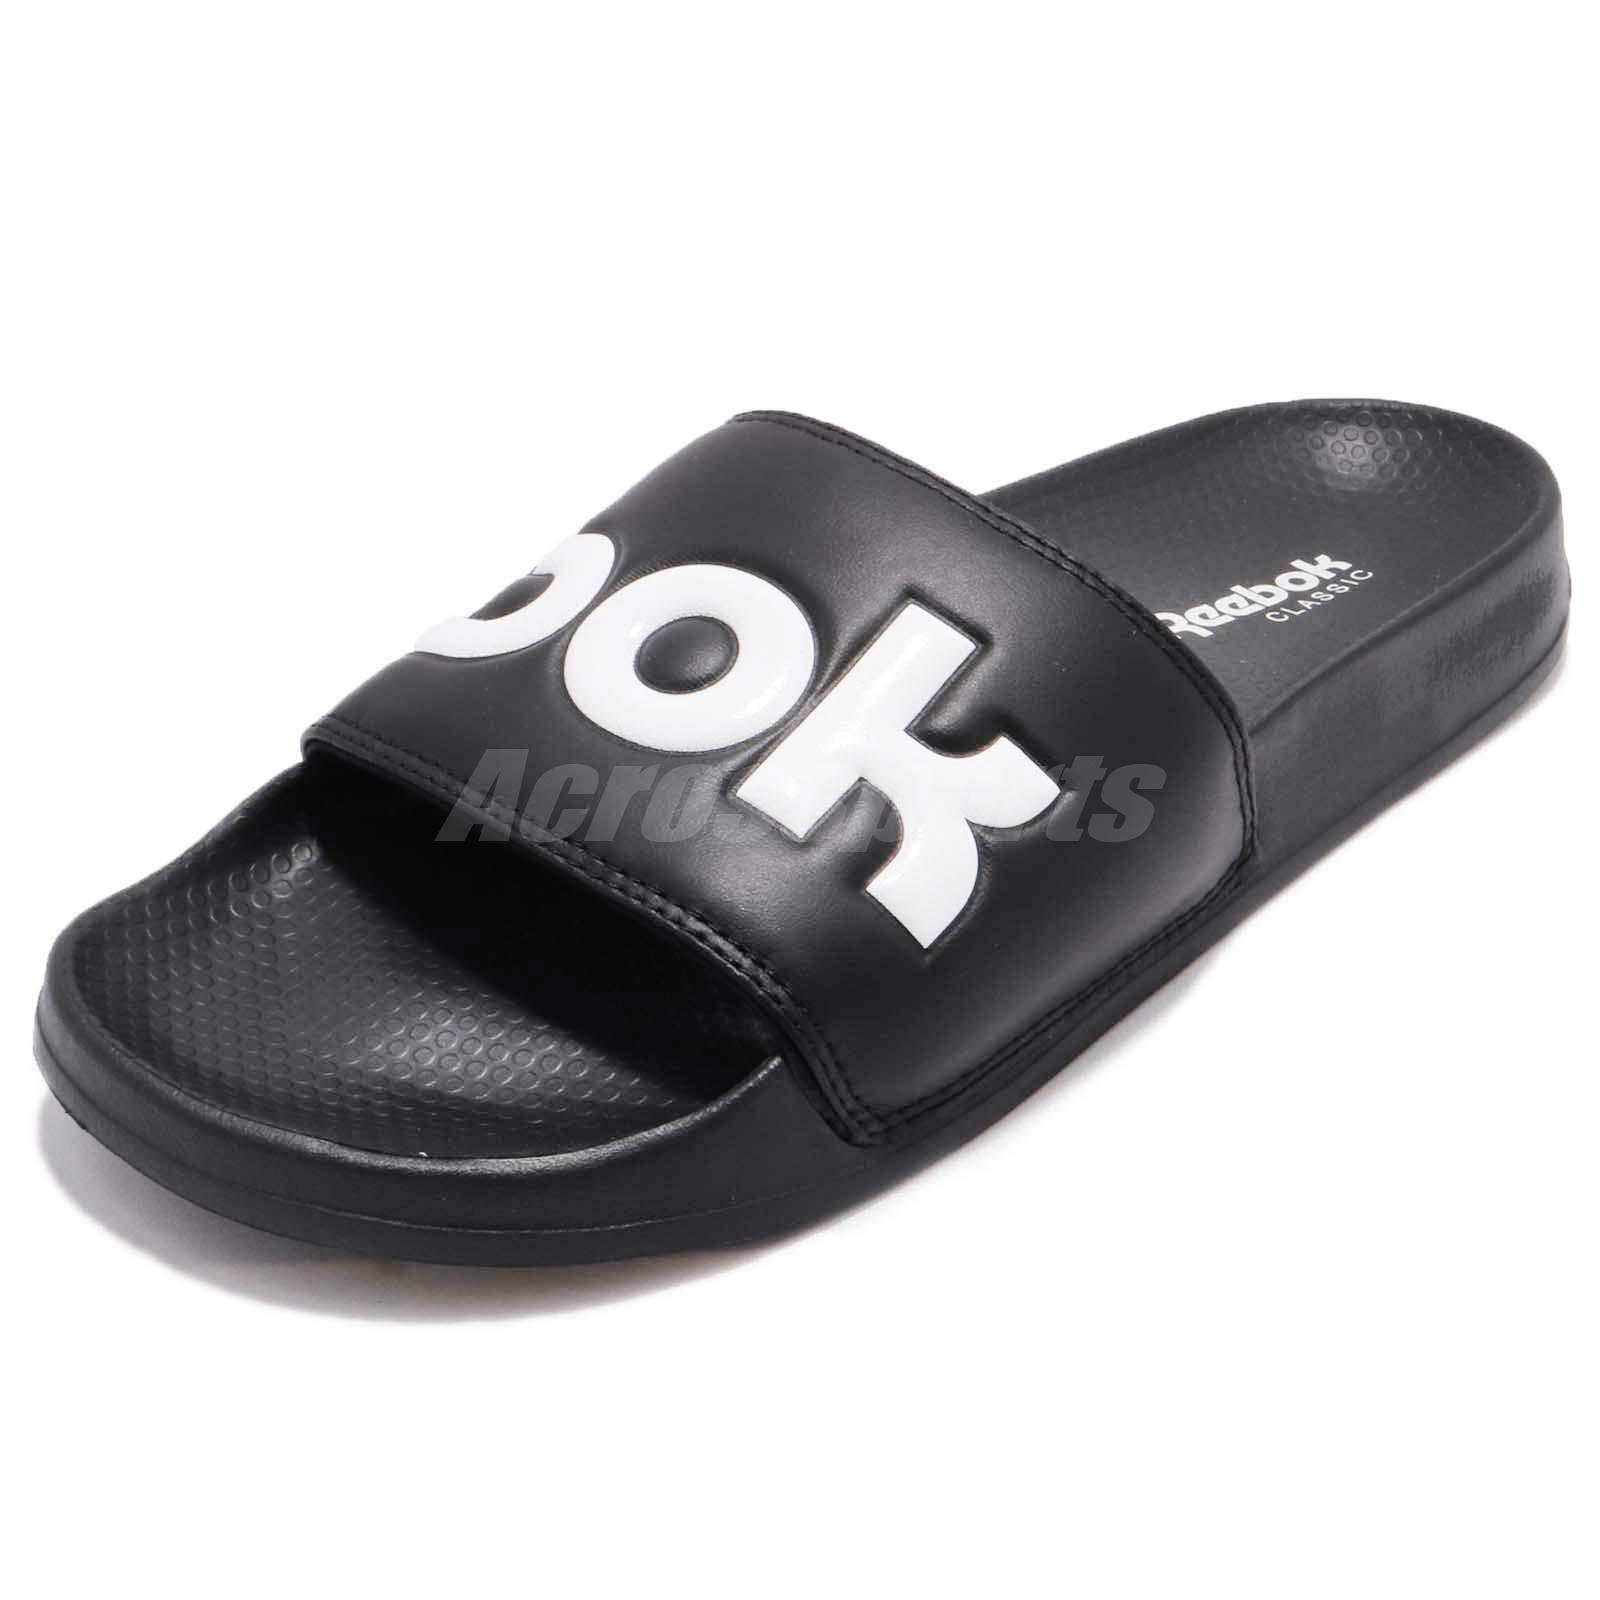 3f486e1ee Reebok Classic Slide Black White Men Women Sports Sandal Slippers CN0735